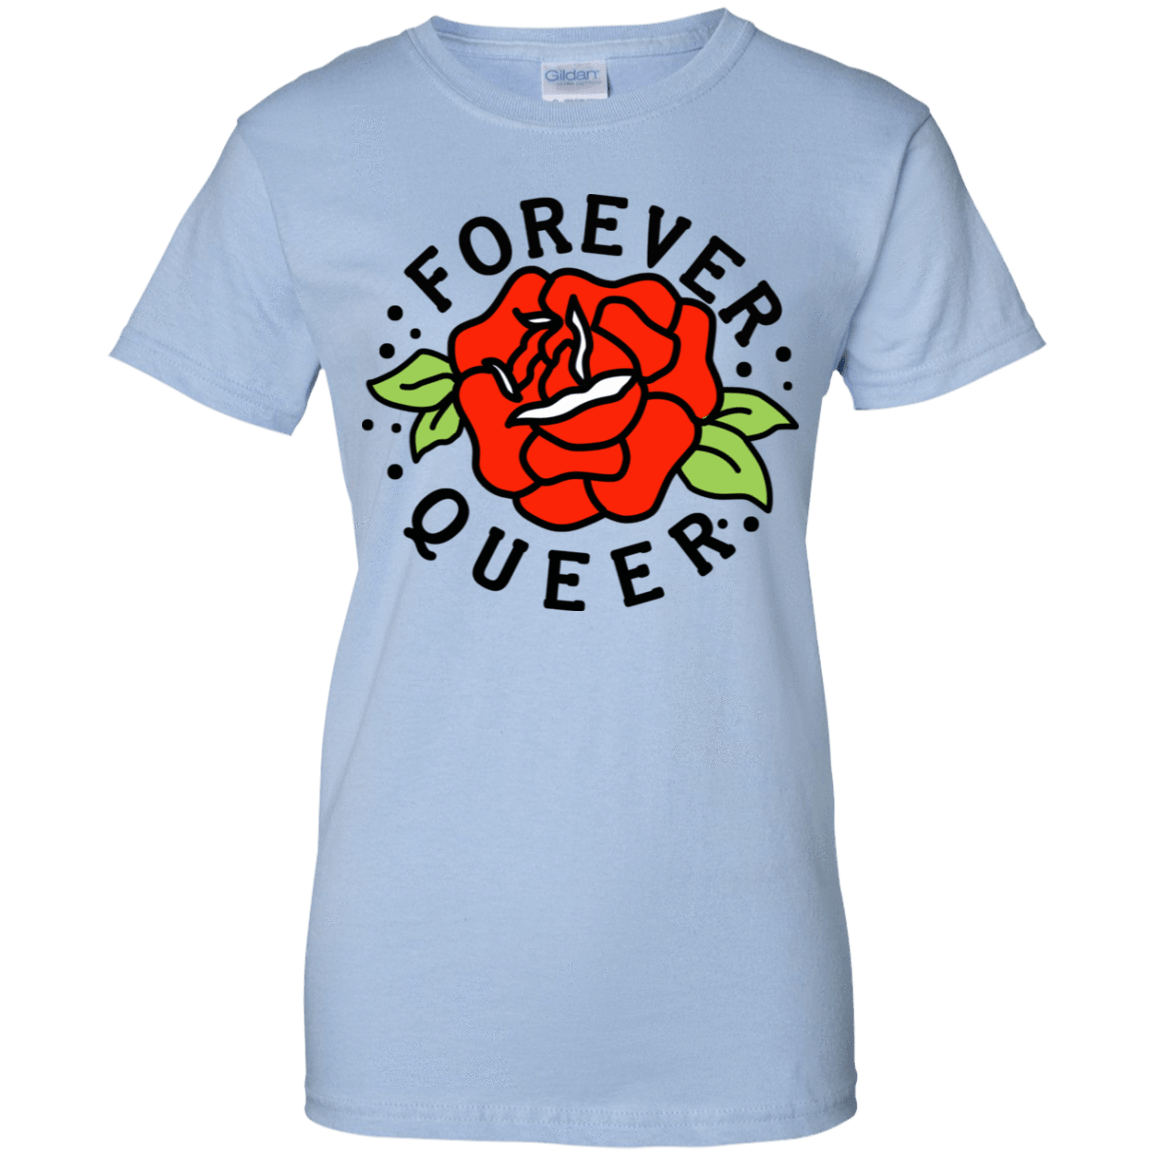 Forever Queer Rose 939-9257-73547904-44716 - Tee Ript